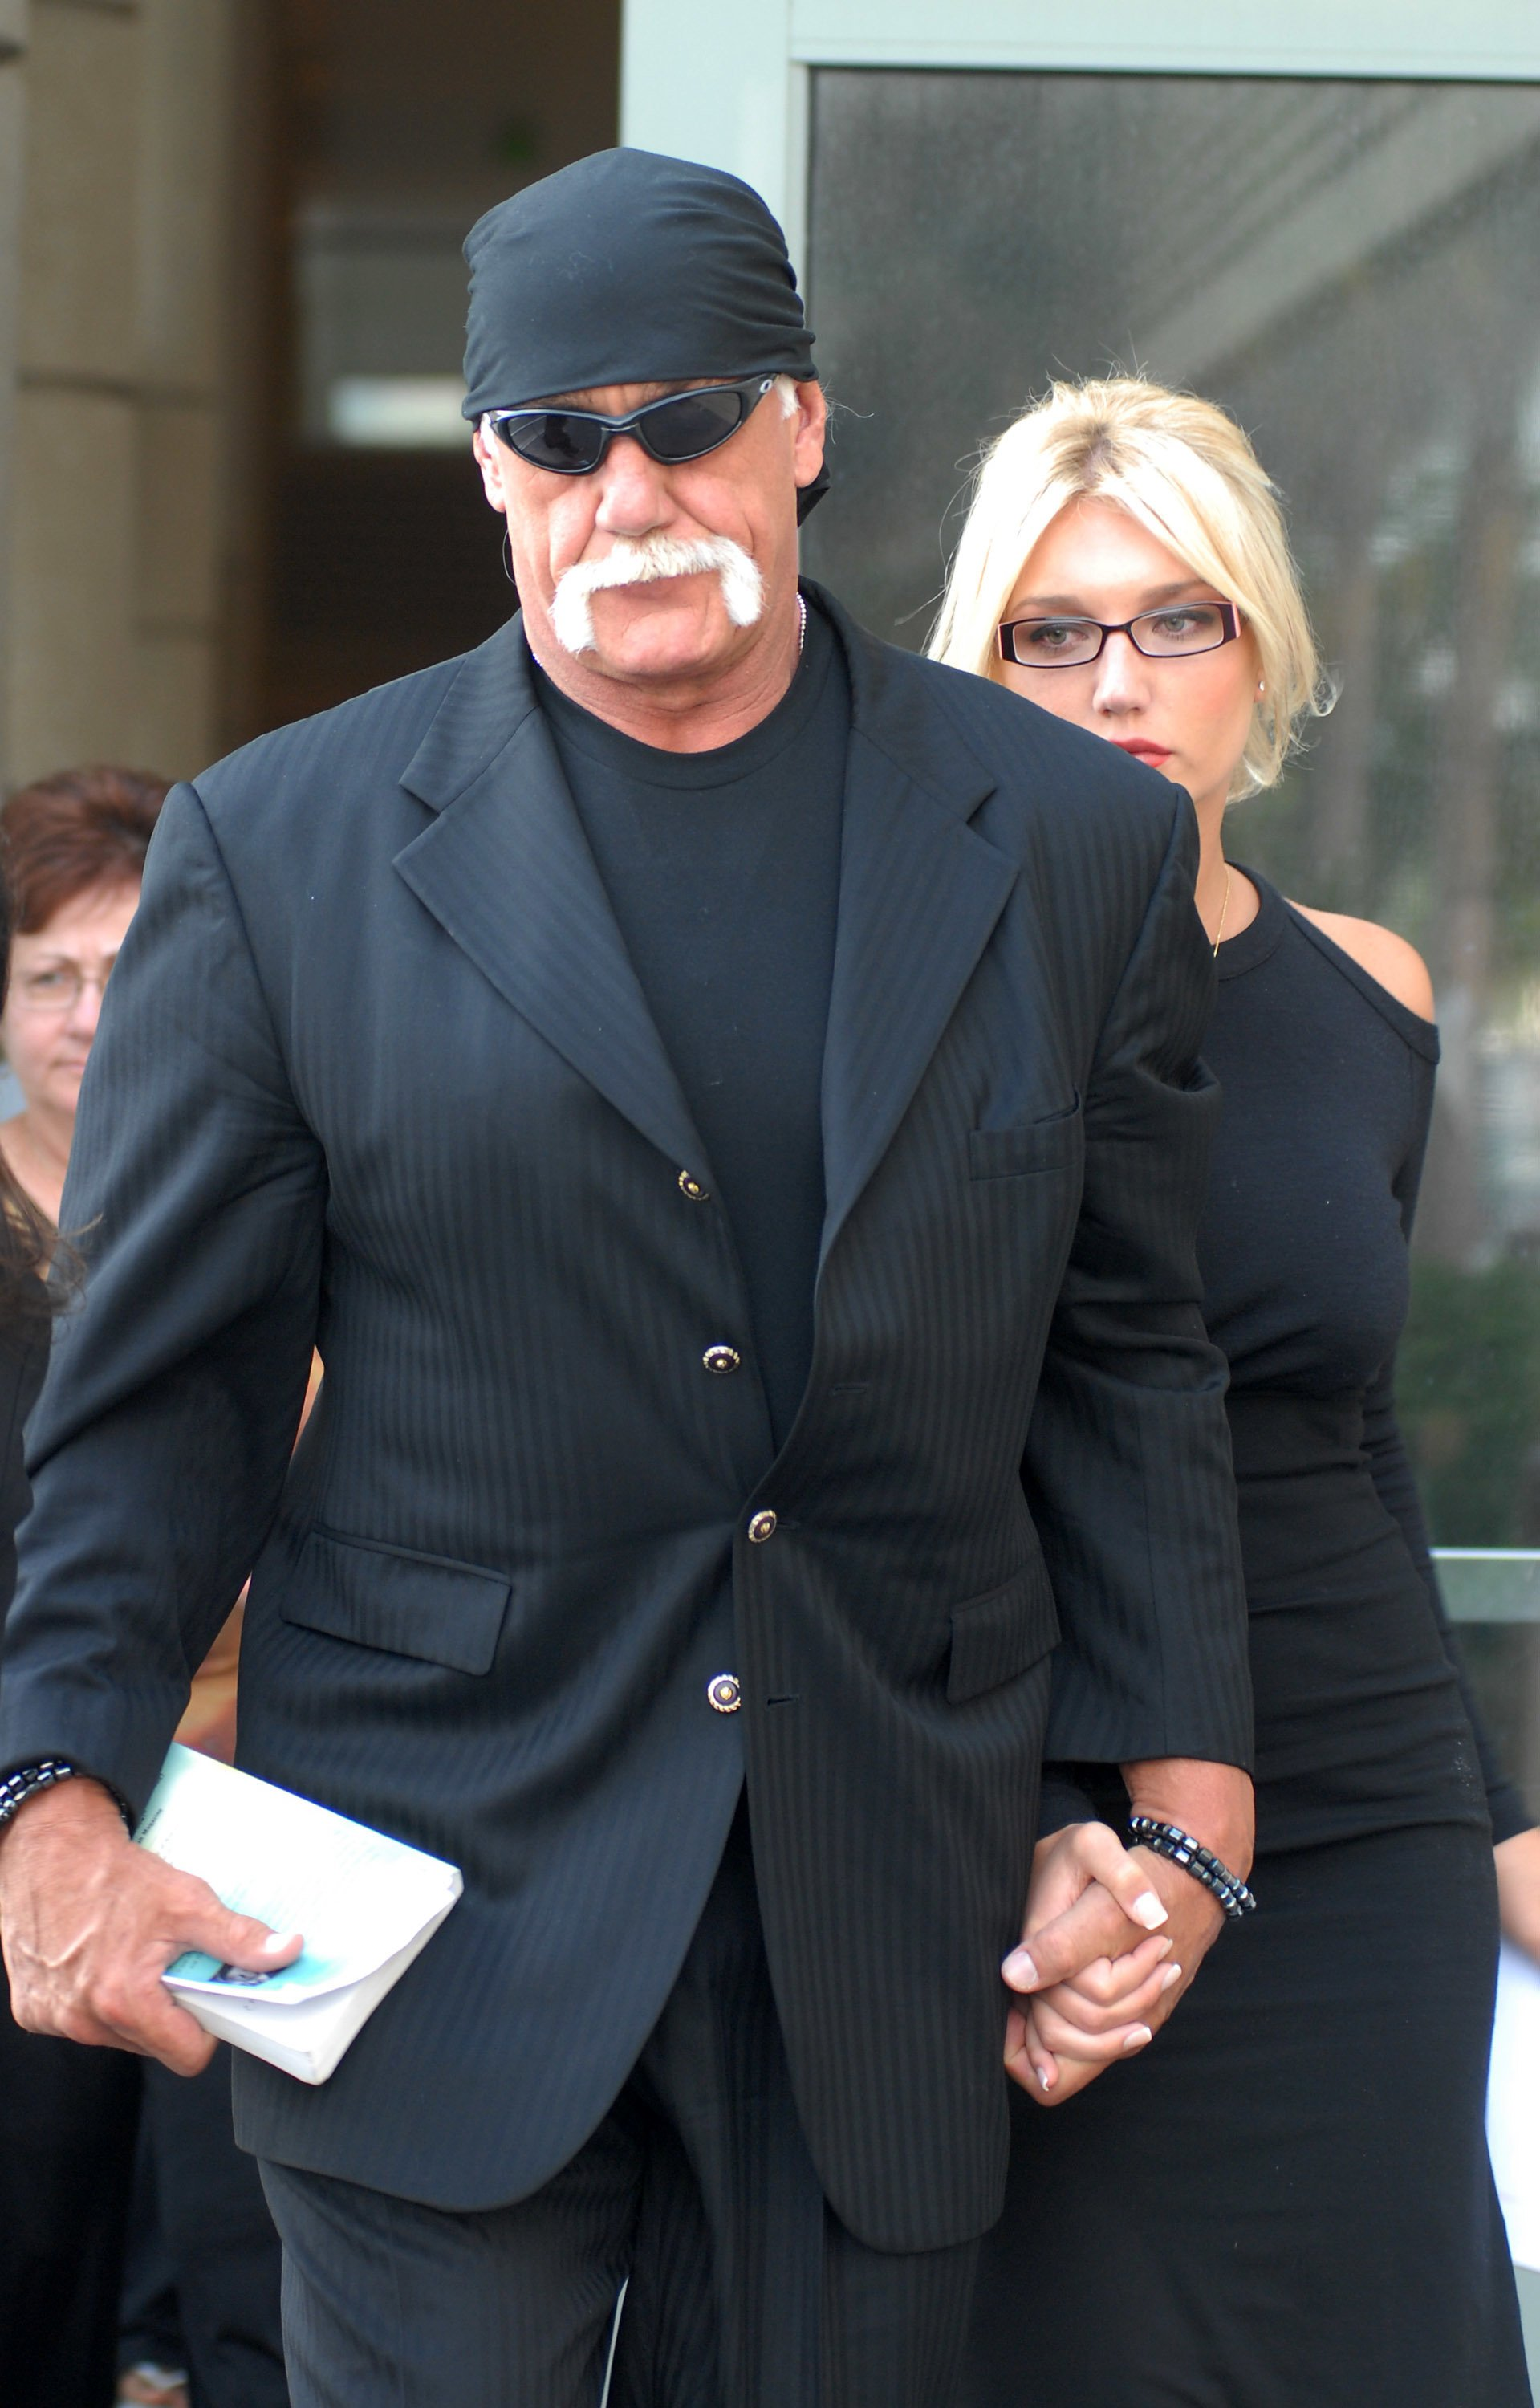 Hulk Hogan and daughter Brooke Hogan on May 9, 2008, in Clearwater, Florida | Photo: Tim Boyles/Getty Images